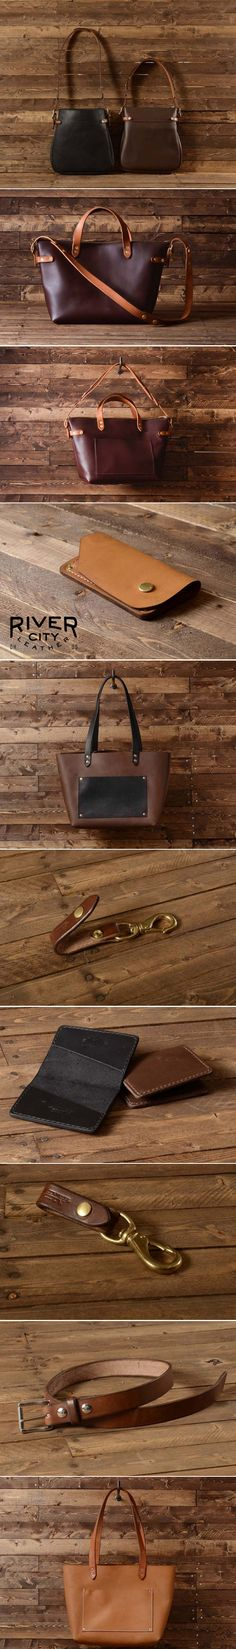 Get Inspired with River City Leather. #handmade